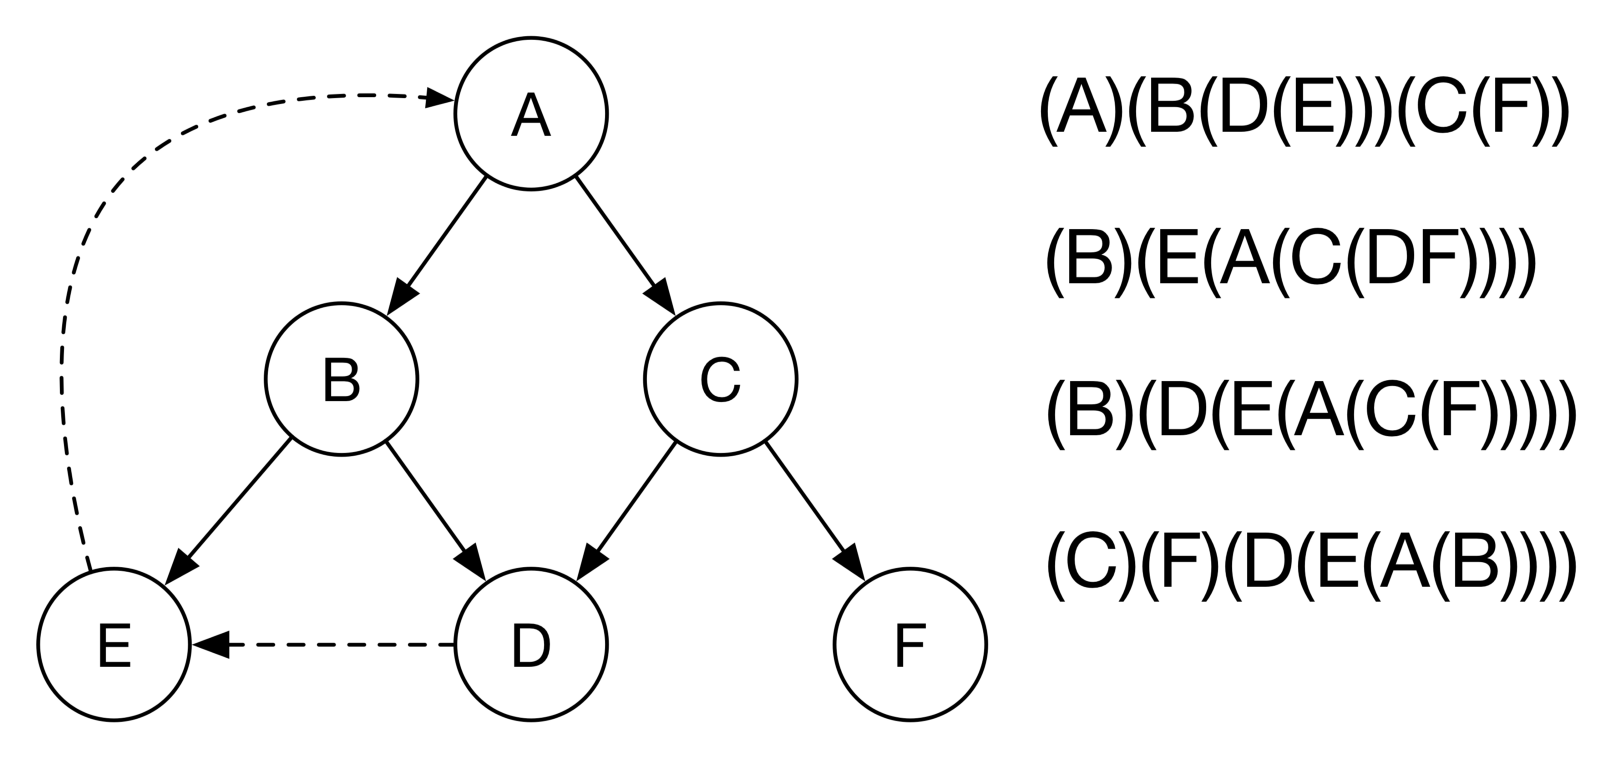 SAT Encoding: Depth First Traversal of Directed Graph